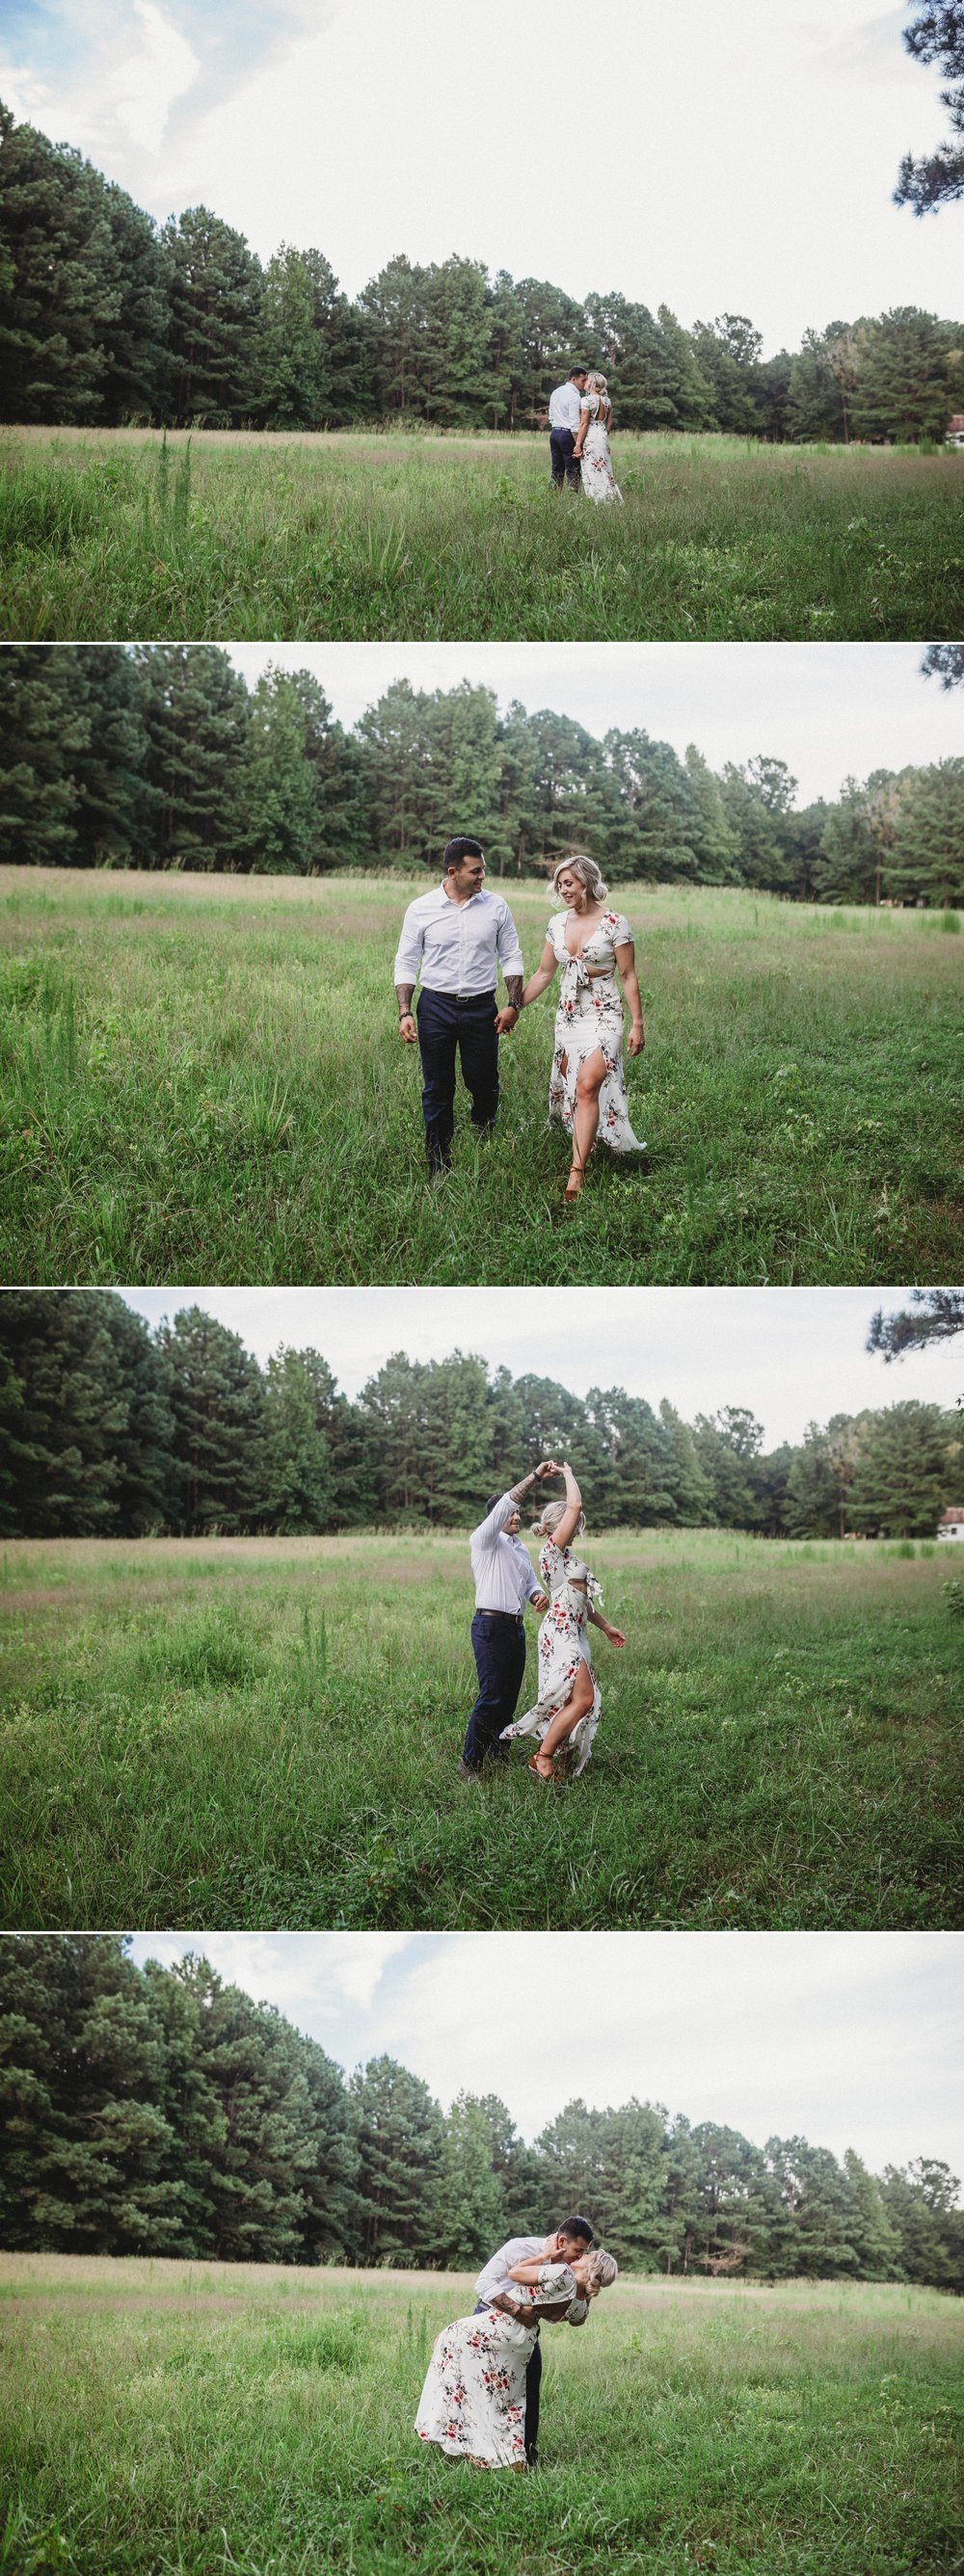 Cassie + Jesse - Engagement Photography Session in Fayetteville North Carolina - Raleigh Wedding Photographer